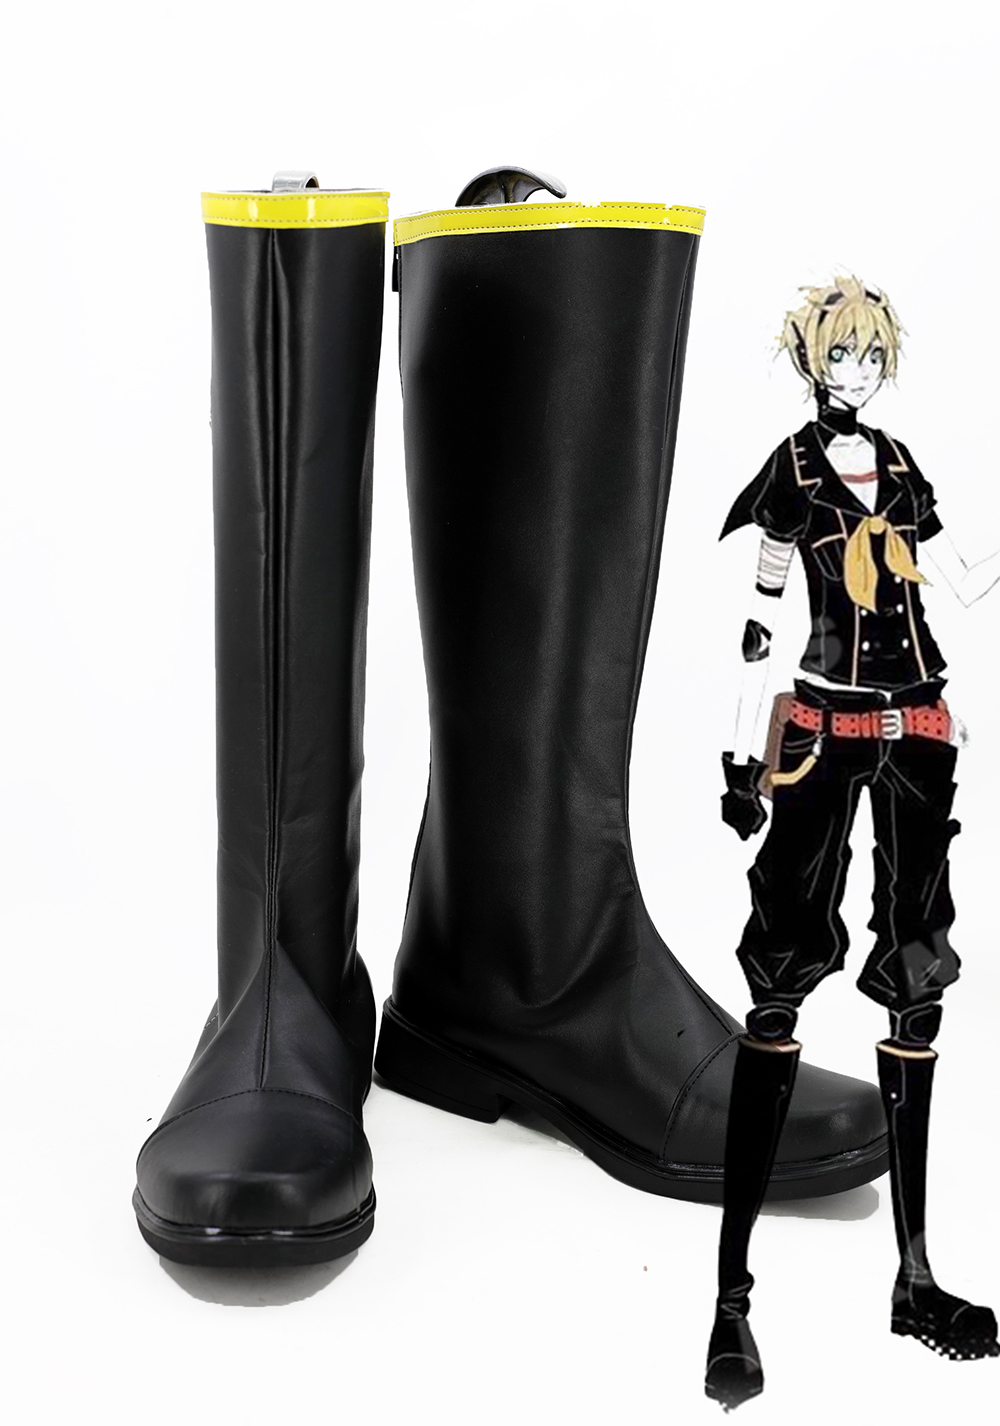 Hot Vocaloid Miku Hatsune Halloween Boots Cosplay Shoes Custom Made Any Size